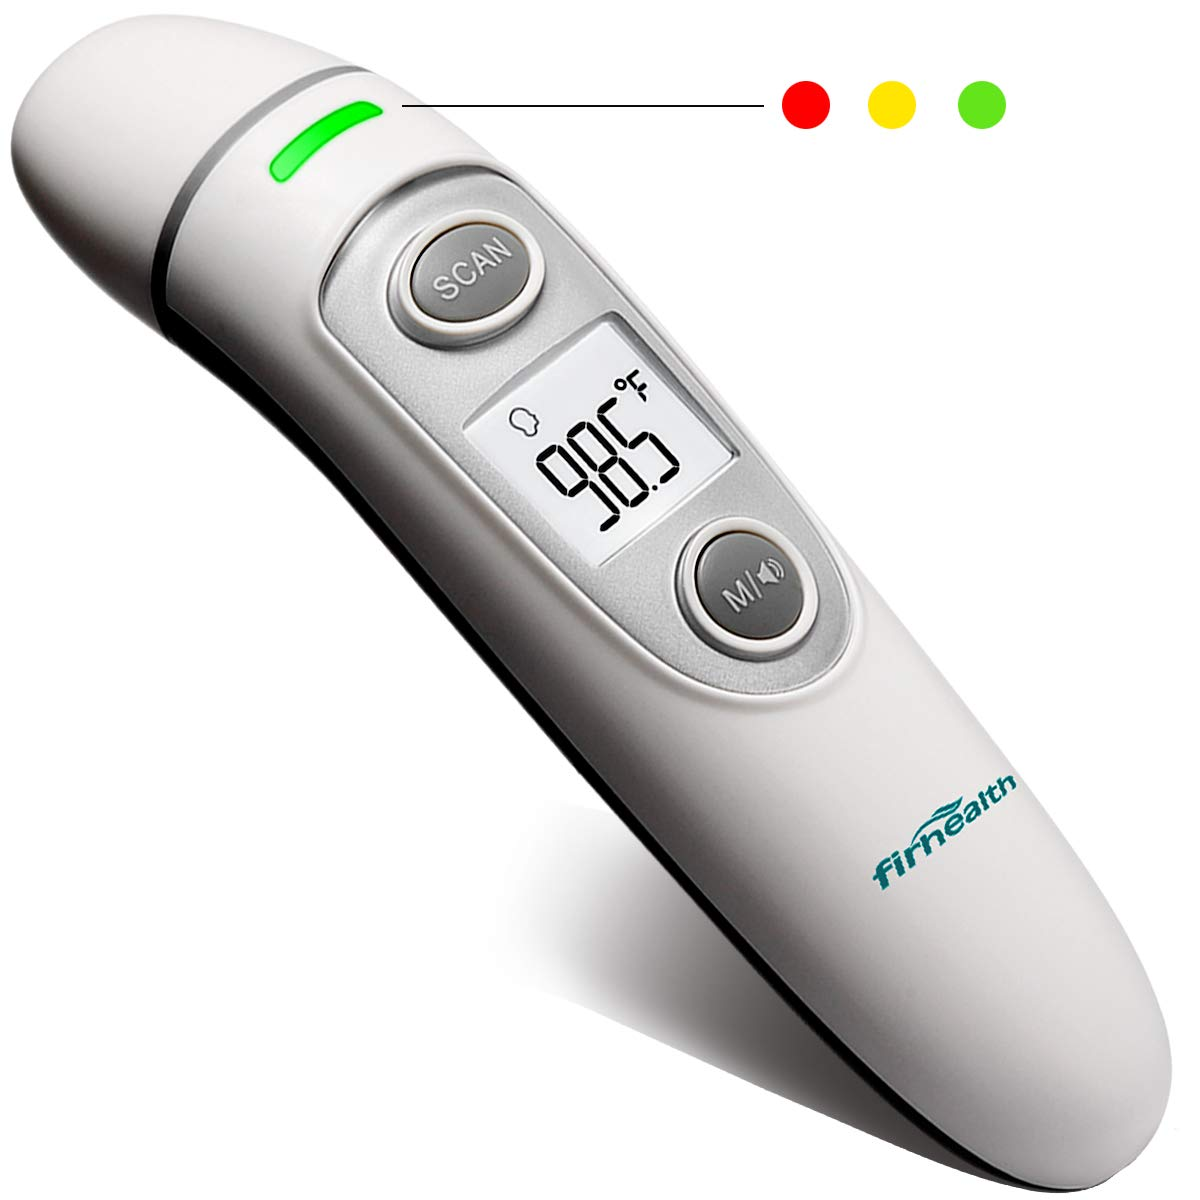 Digital Infrared Baby Thermometer, Firhealth Ear Forehead Object Room Professional 4 in 1, Accurate Fever Indicator Instant Read,Suitable for Baby, Adult, Object and Ambient, FDA CE Approved by FIRHEALTH (Image #1)